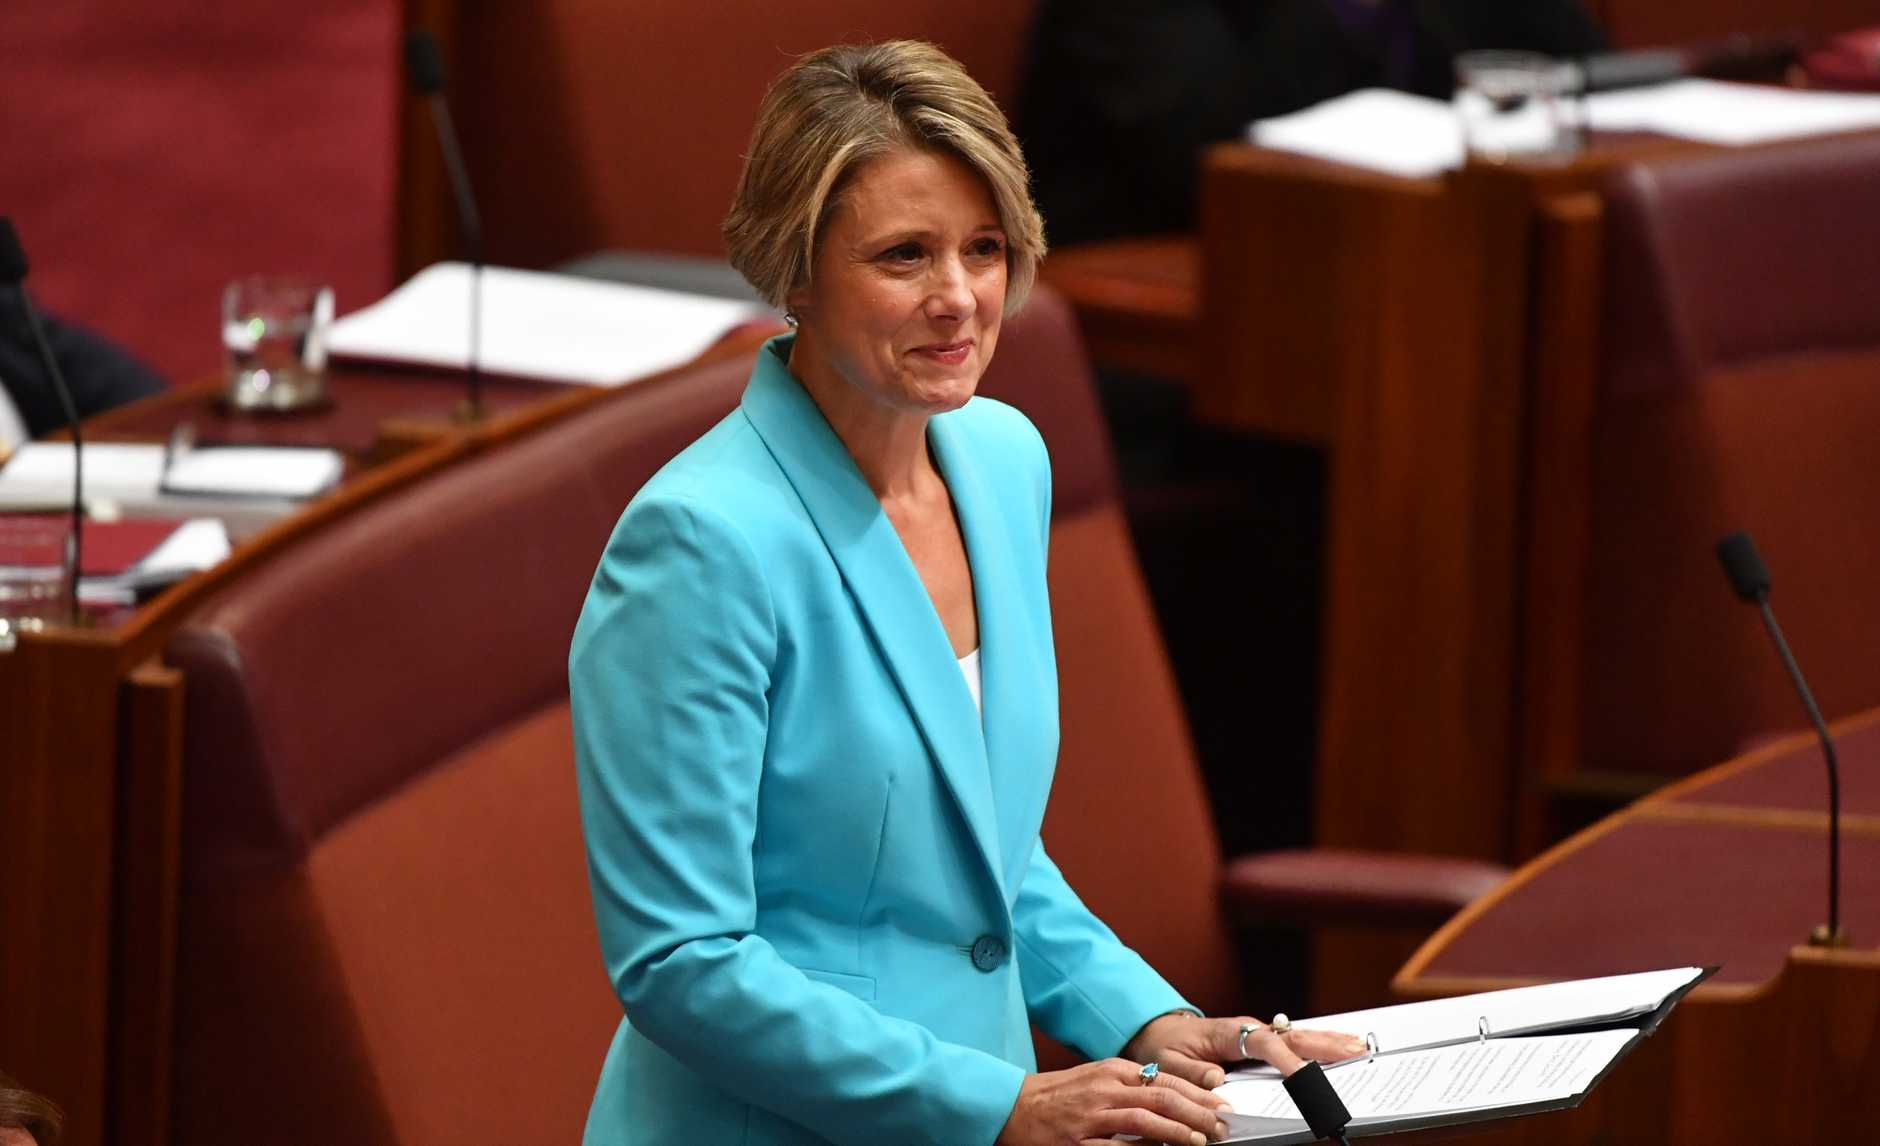 Labor Senator Kristina Keneally makes her maiden speech in the Senate chamber at Parliament House. Photo: AAP Image/Mick Tsikas